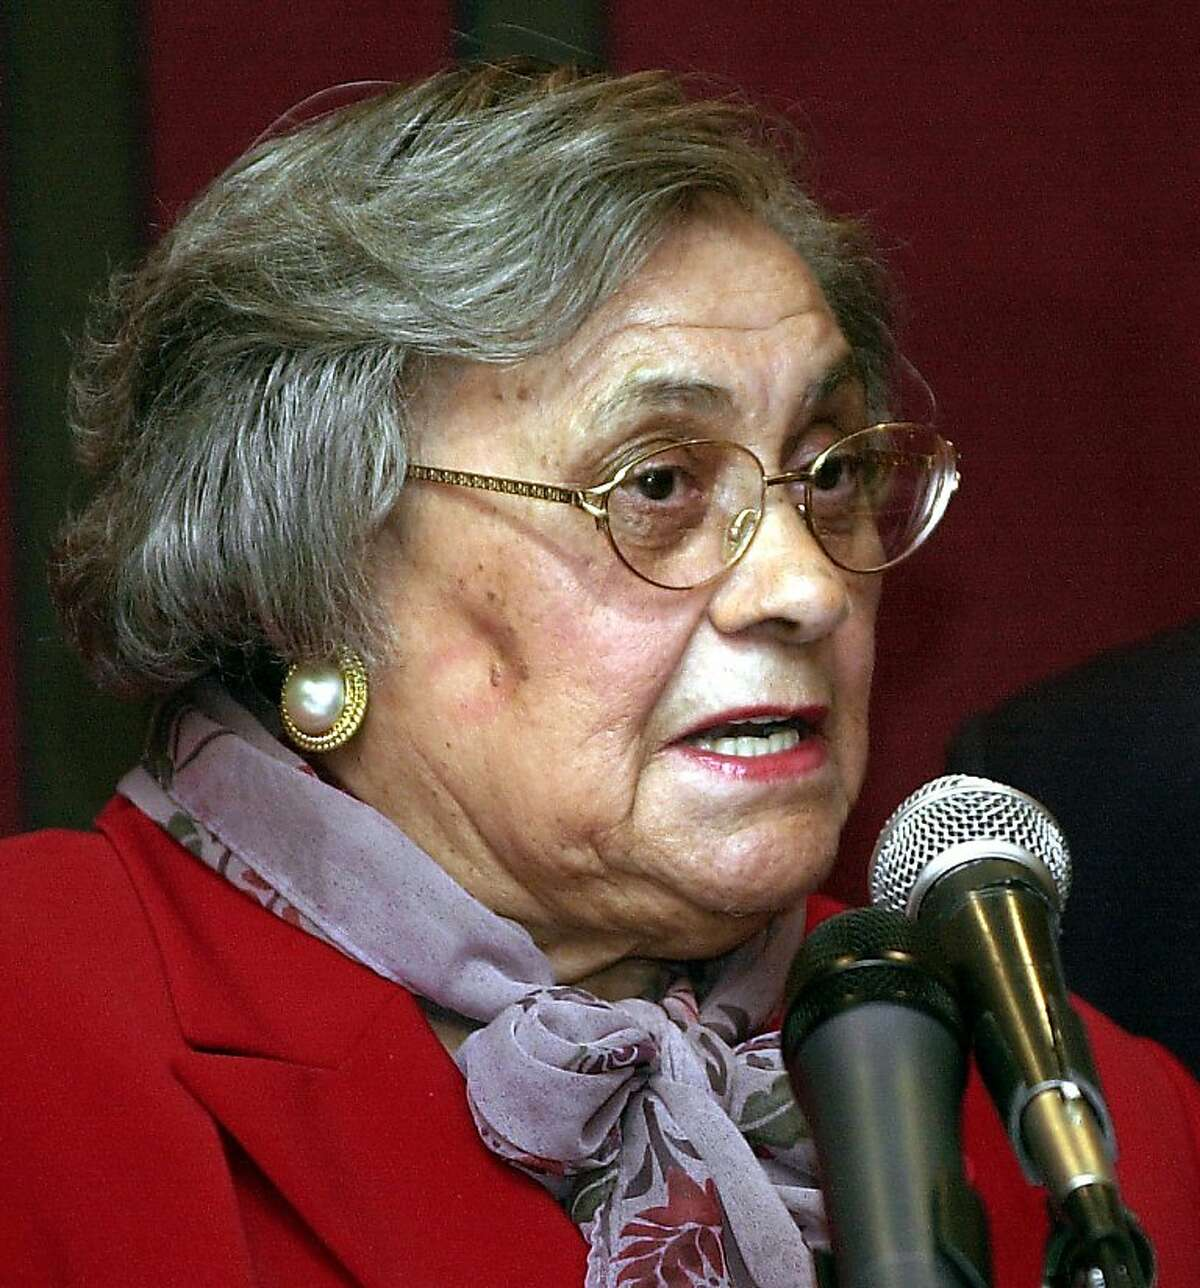 Essie Mae Washington-Williams, the long-unrecognized daughter of the late U.S. Sen. Strom Thurmond of South Carolina, died Monday at 87. Here, Washington-Williams discusses her life as Thurmond's daughter in this December 17, 2003, file photo. (Diedra Laird/The State/MCT)